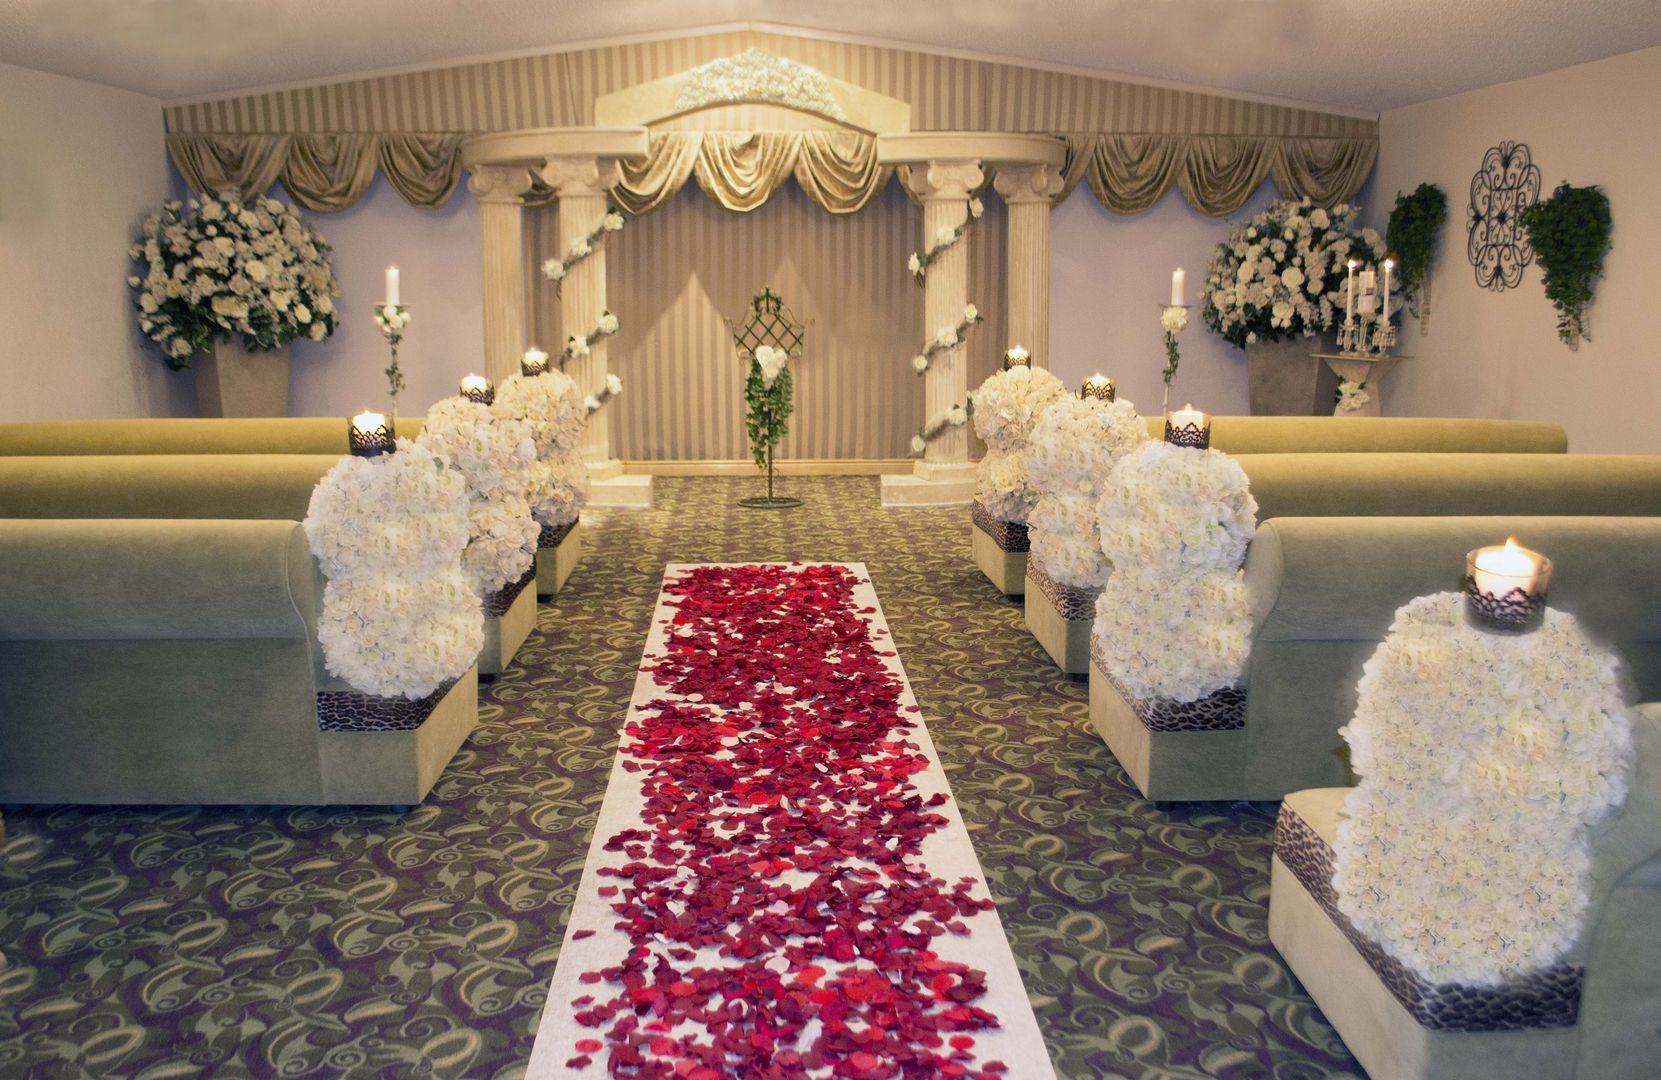 vegas wedding chapels Belleza Wedding Chapel Las Vegas is one of the most romantic